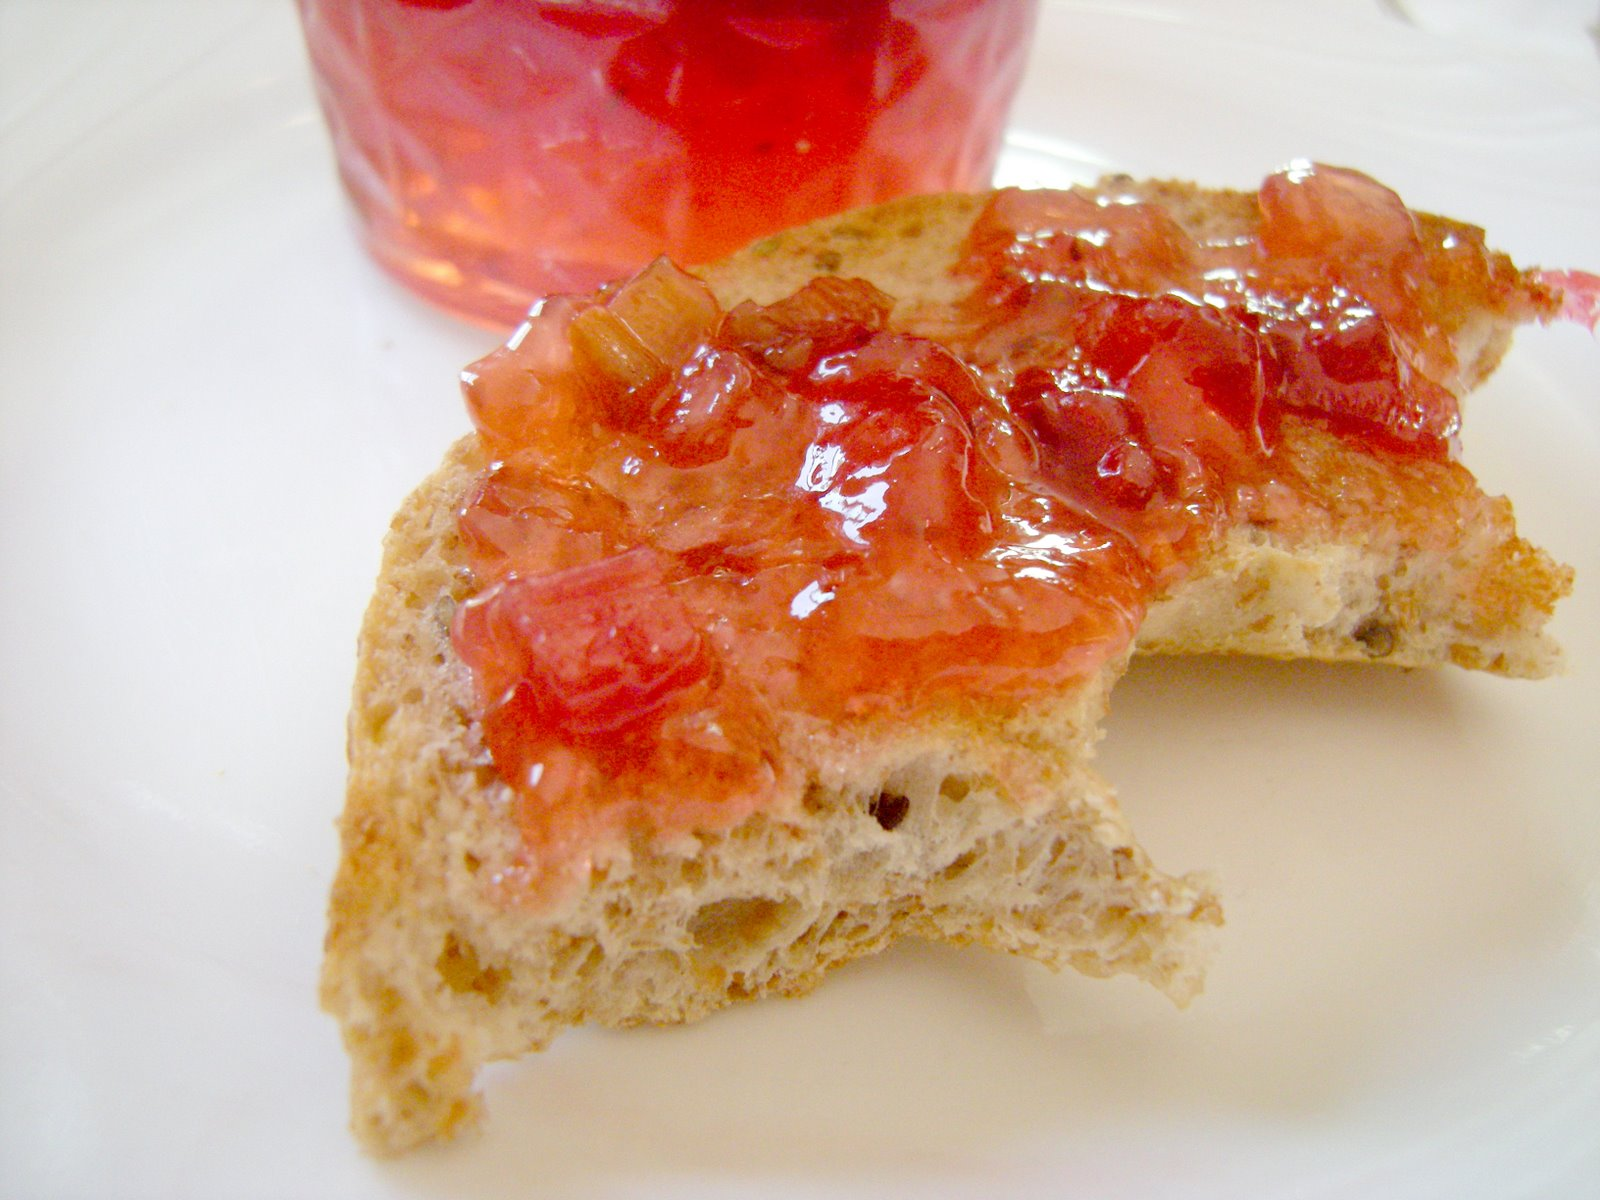 Crafty Lass: Rhubarb Strawberry Jam